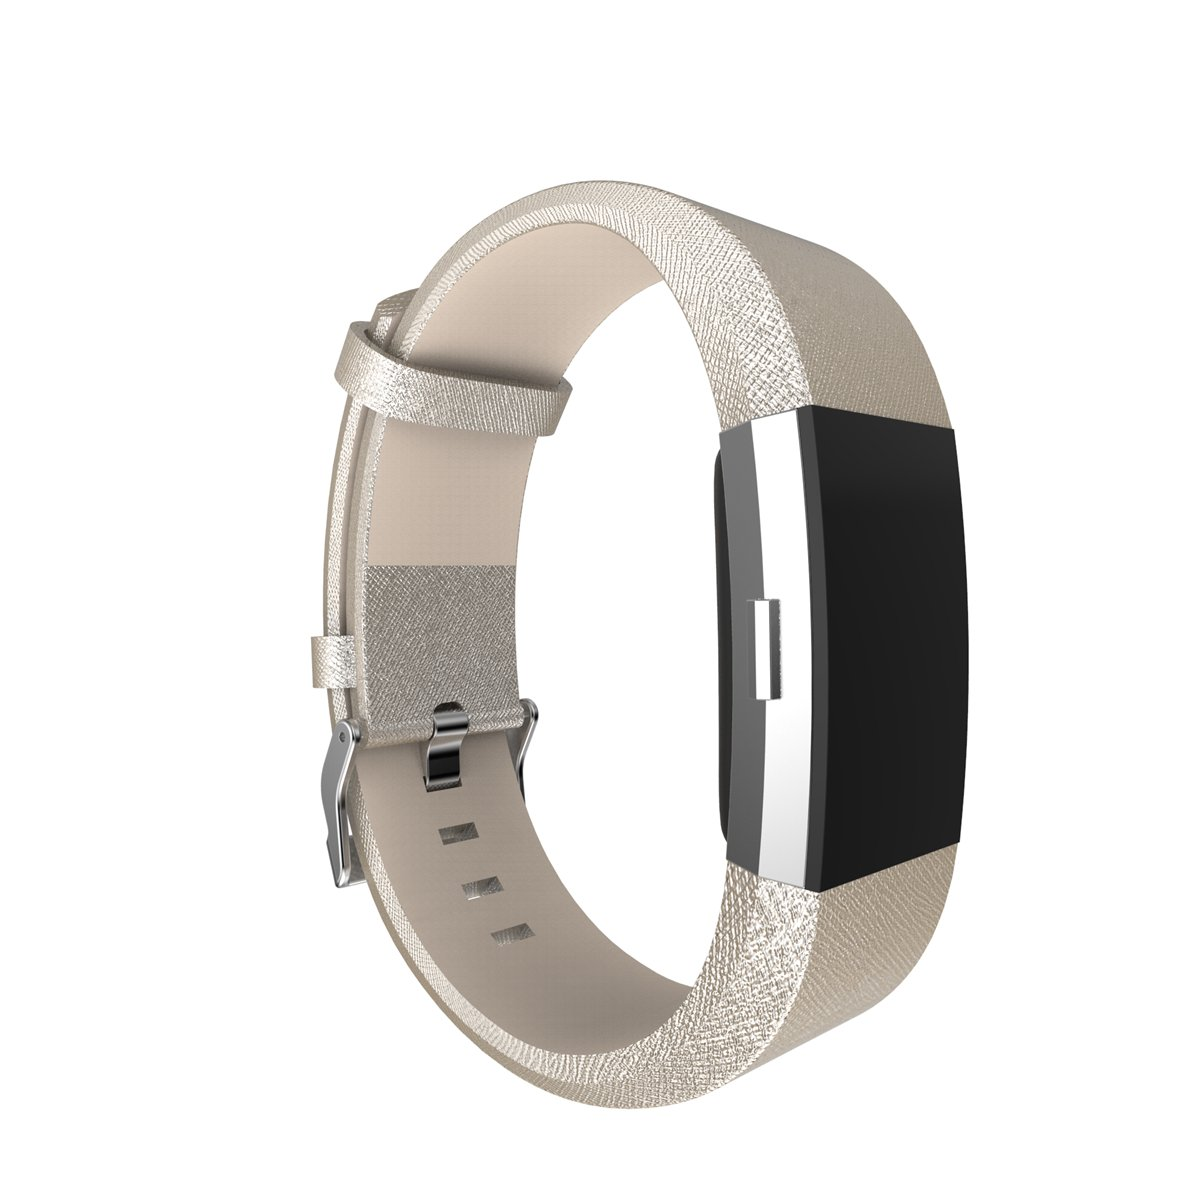 For Fitbit Charge 2 Band Leather Strap, AISPORTS Fitbit Classic Leather Smart Watch Adjustable Replacement Band Wristband with Metal Bracelet Buckle Clasp for Fitbit Charge 2 Fitness Accessories, Gold